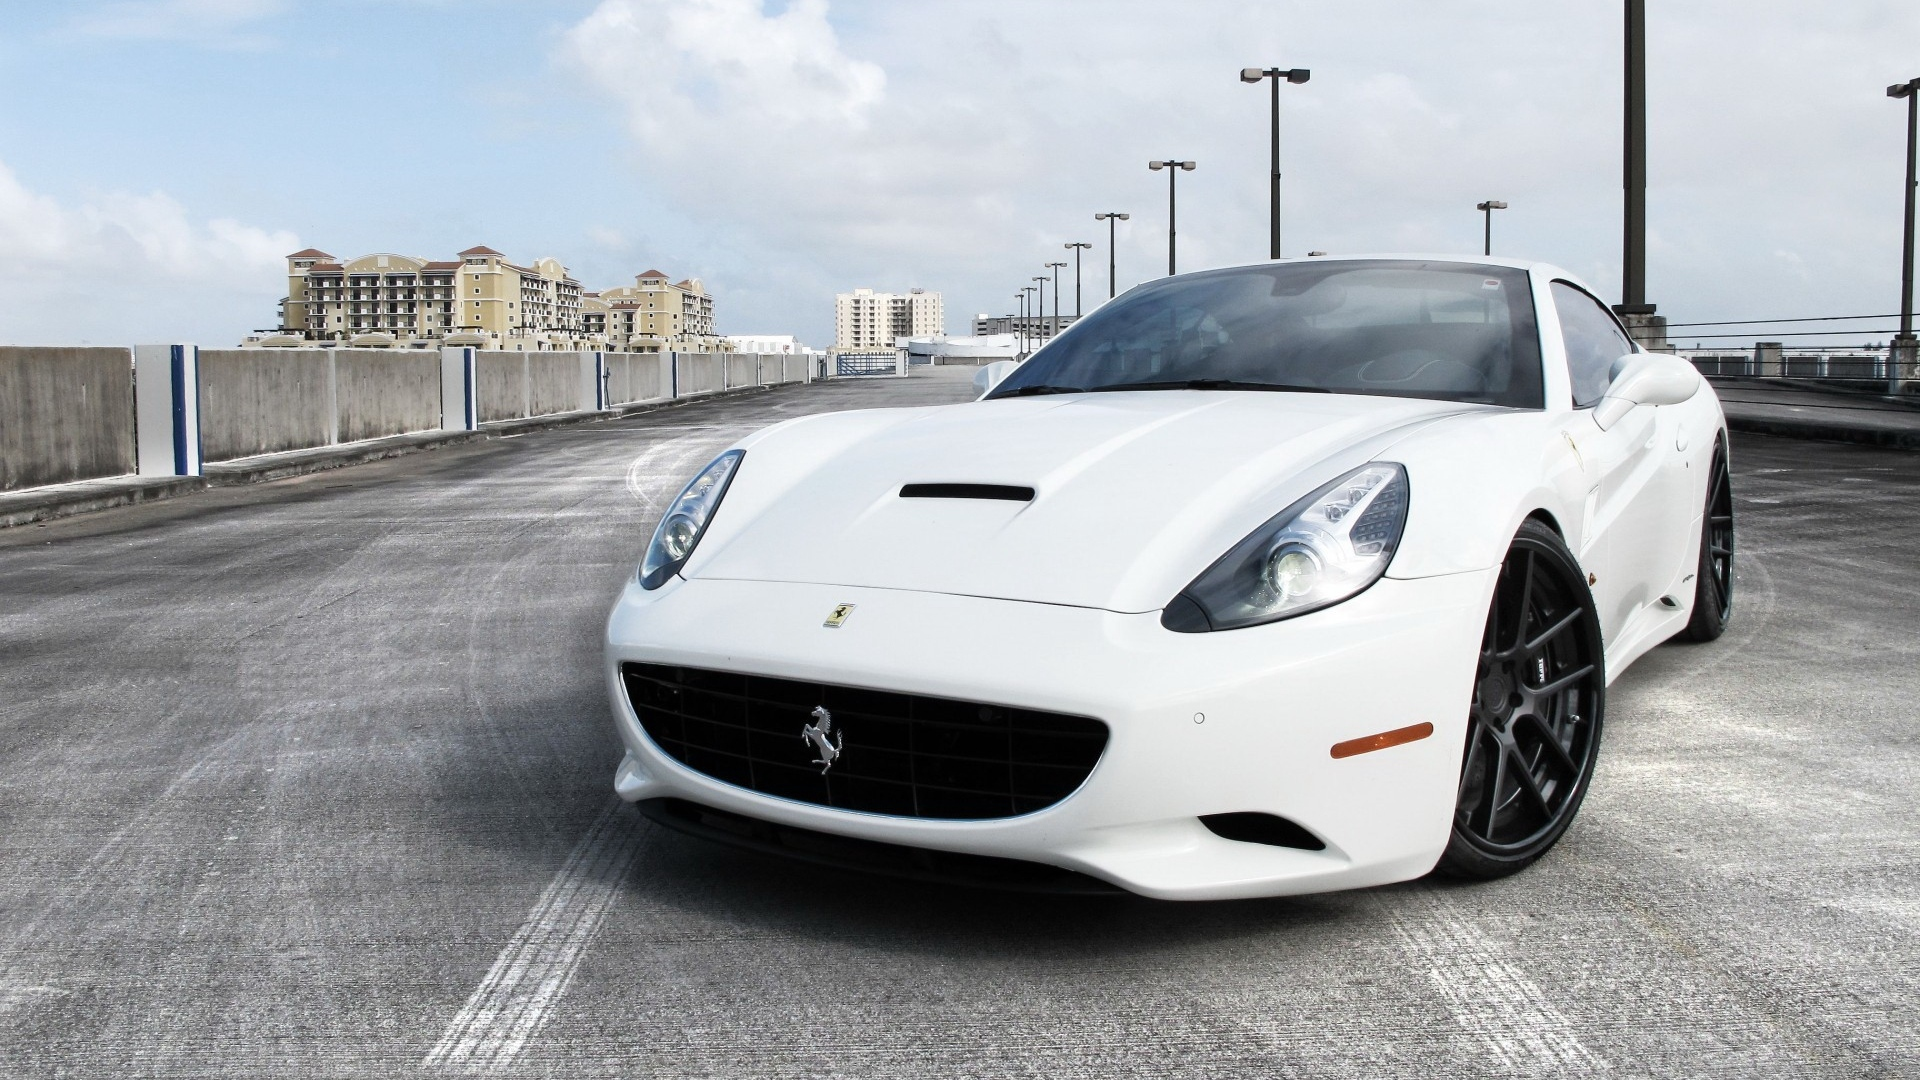 White Ferrari Pictures Wallpaper 1920x1080 6956